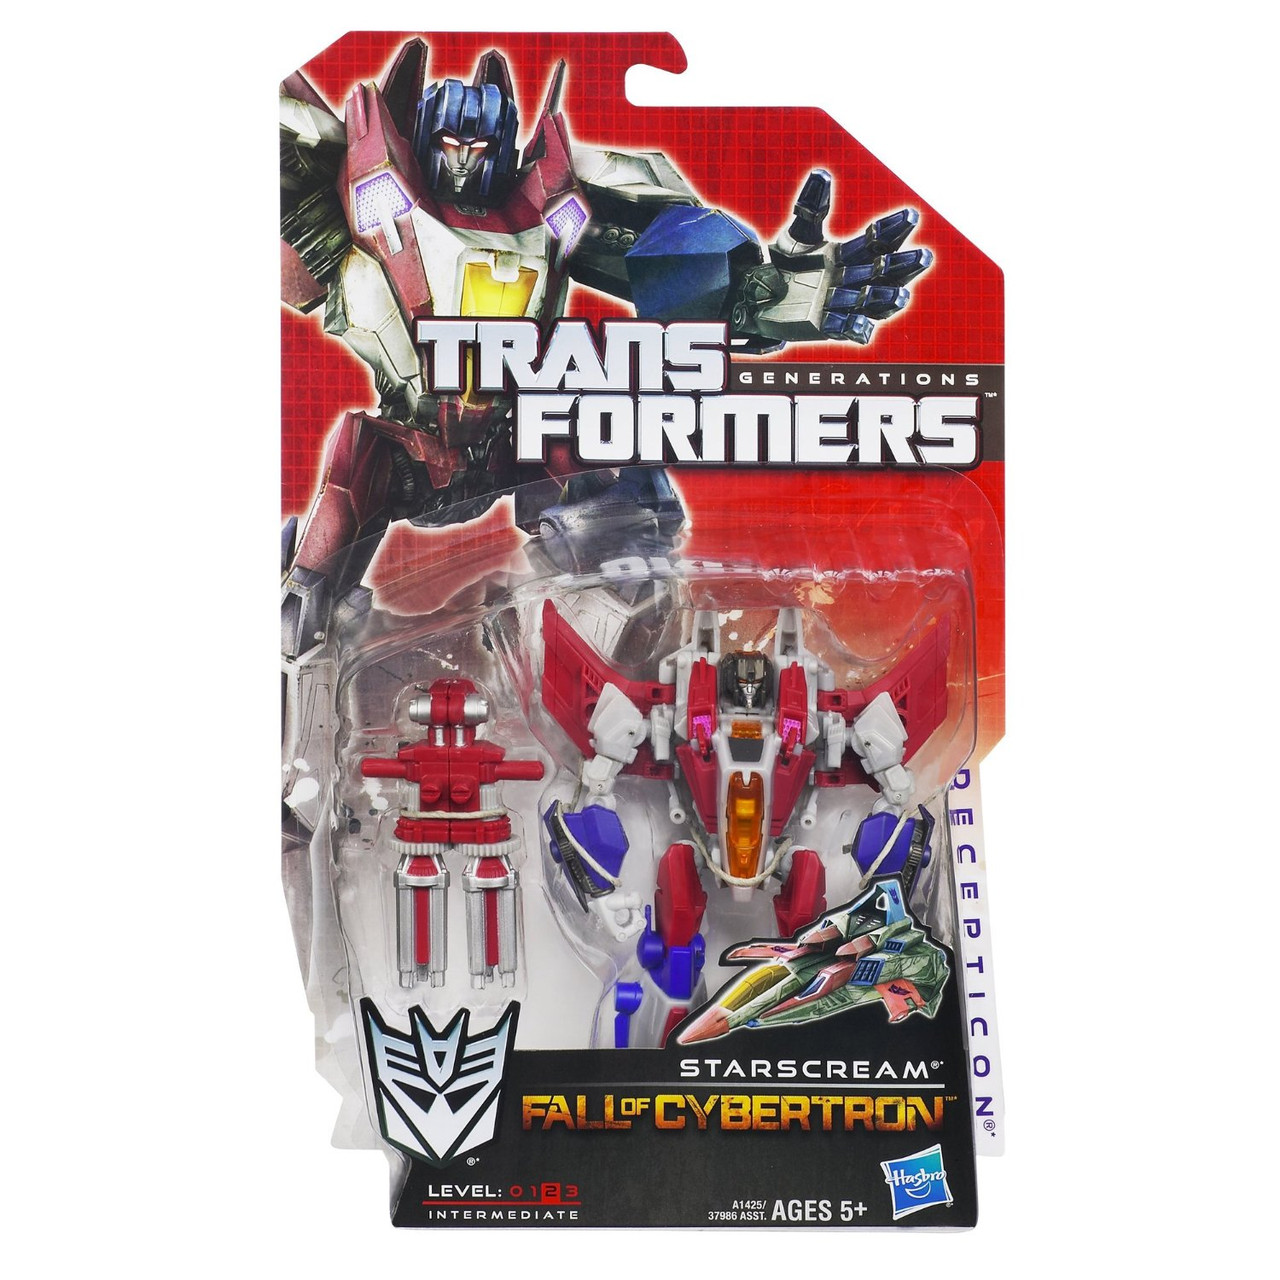 "Десептикон Старскрим из м/ф ""Дженерейшнс"" - Starscream, Deluxe, Generations, Hasbro"